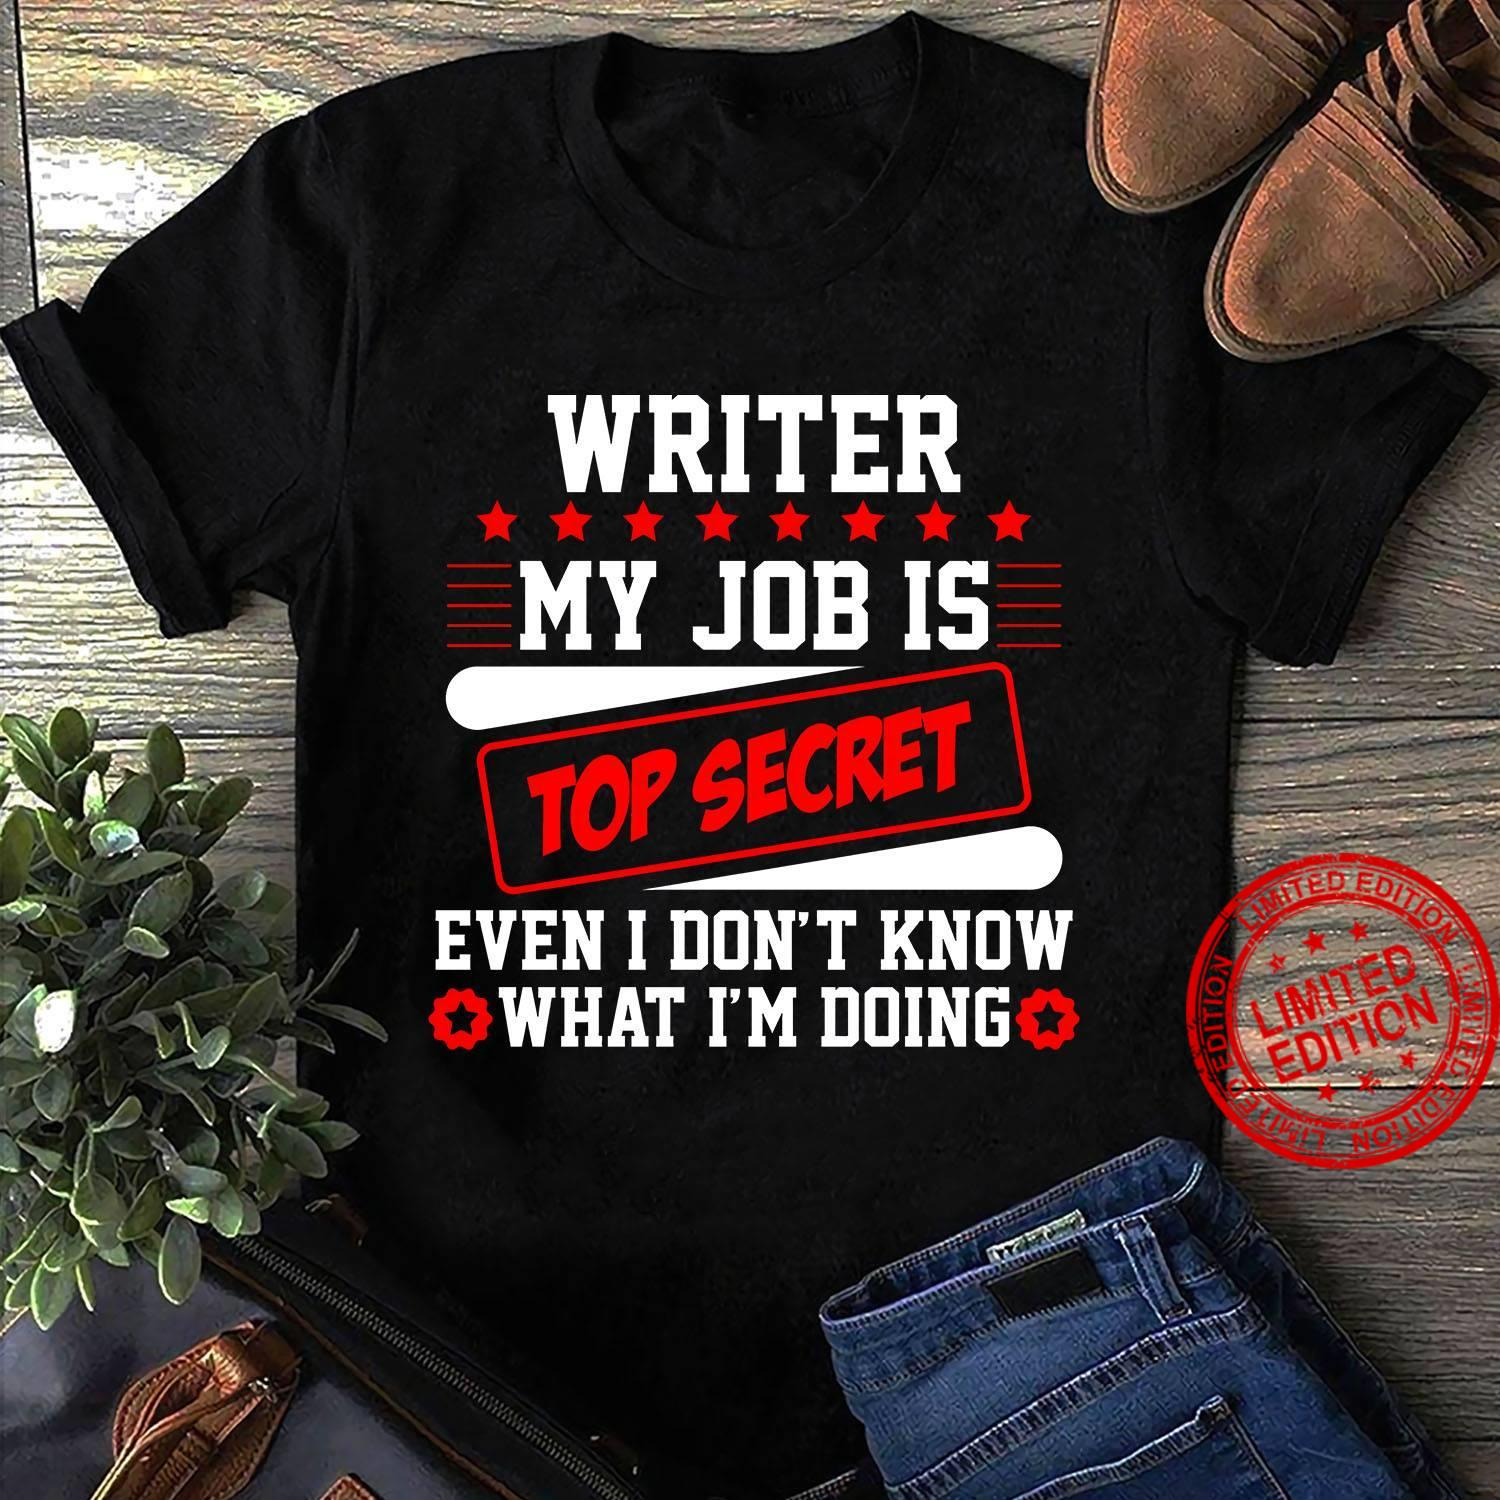 Writer My Job Is Top Secret Even I Don't Know What I'm Doing Shirt